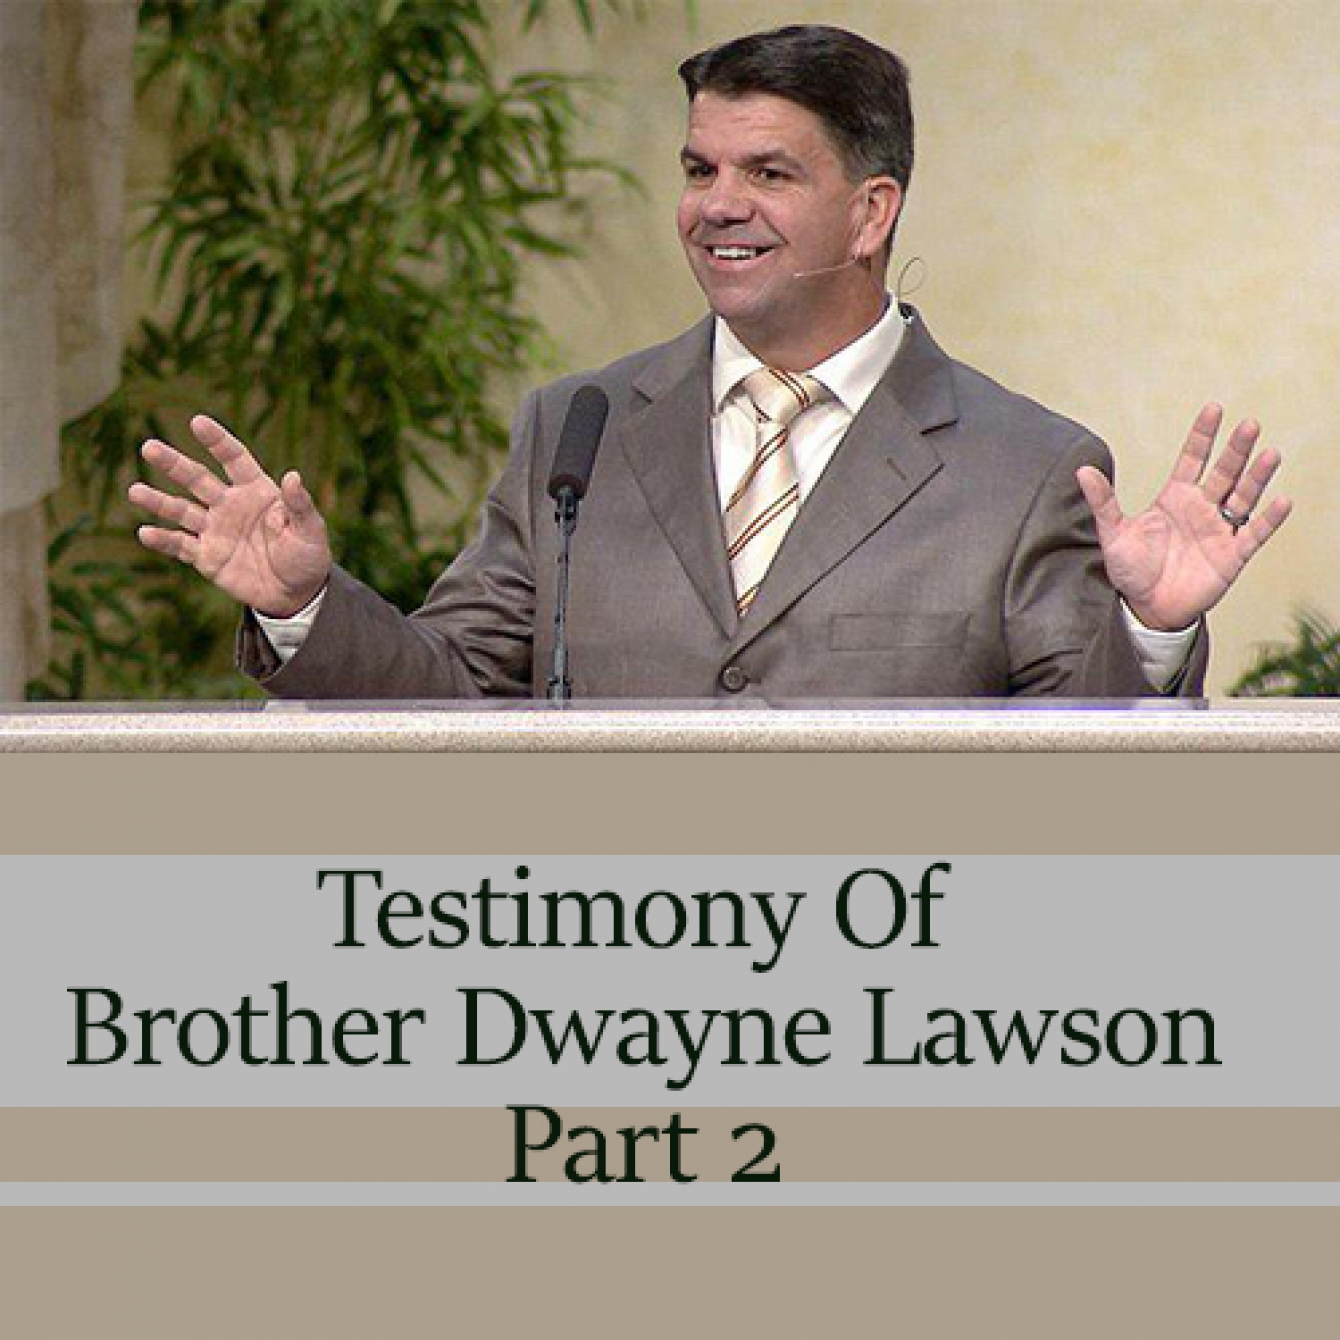 Brother Dwayne Lawson Part 2